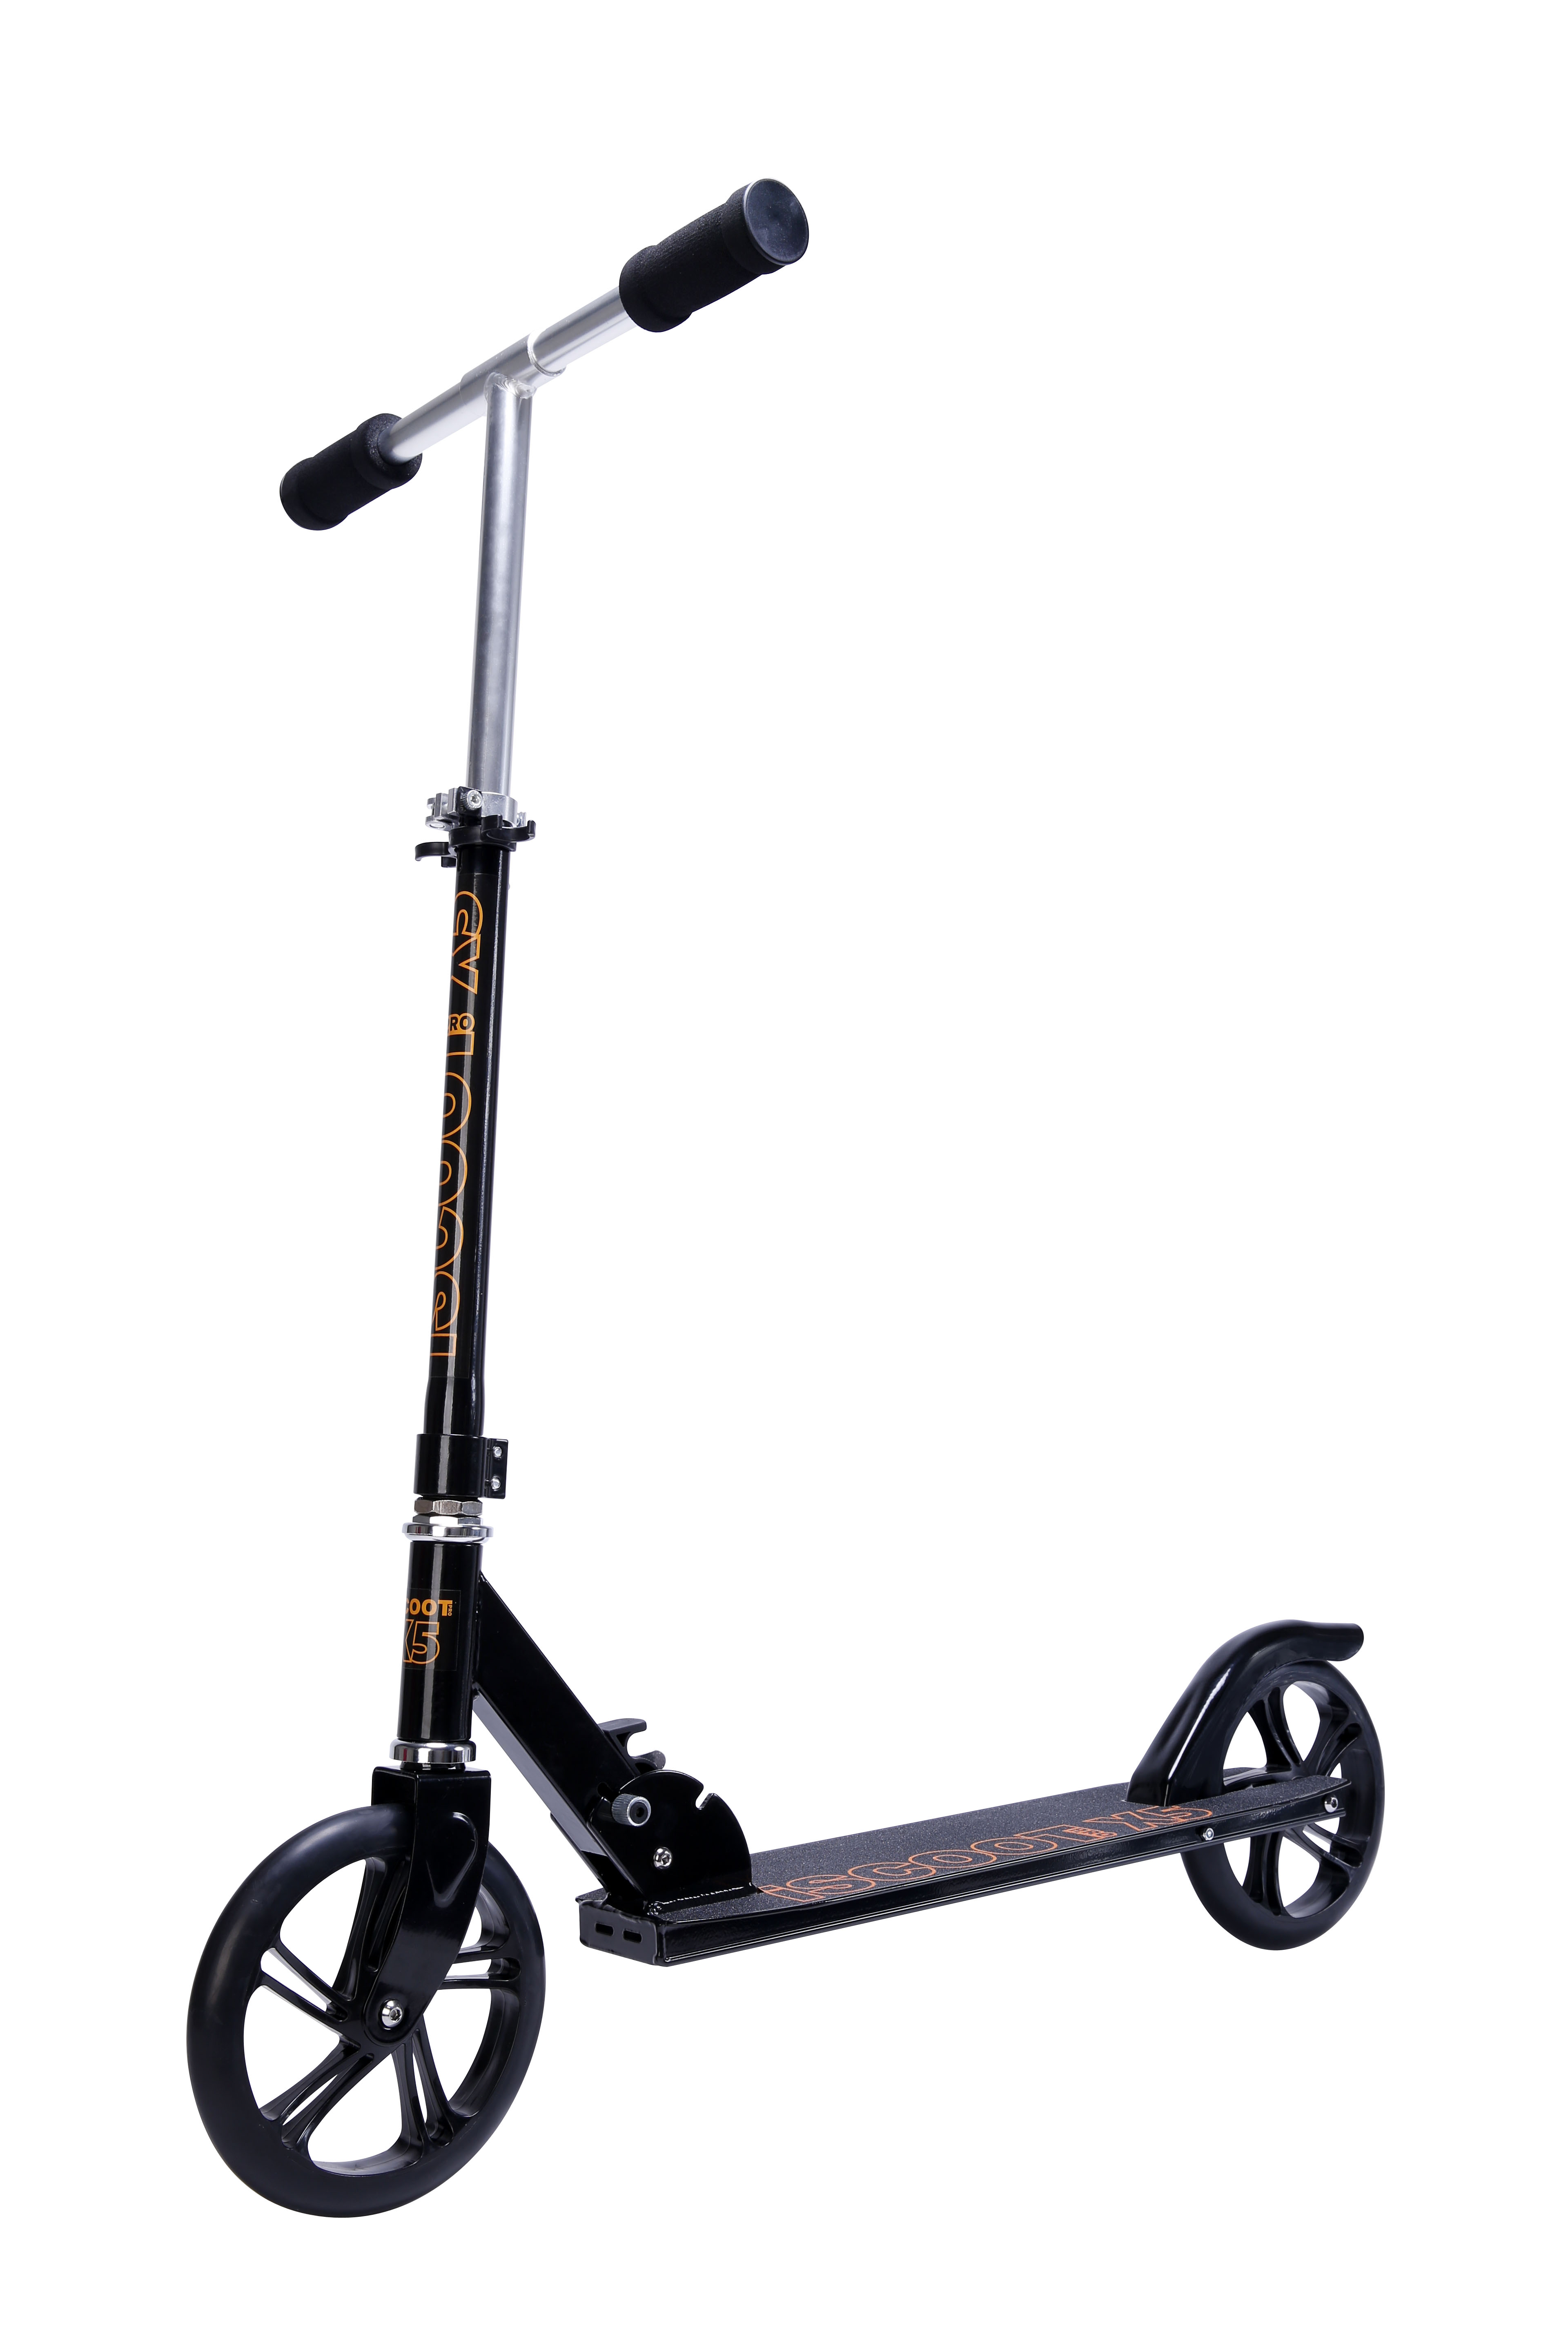 200MM Big wheel Kick Scooter for Adults